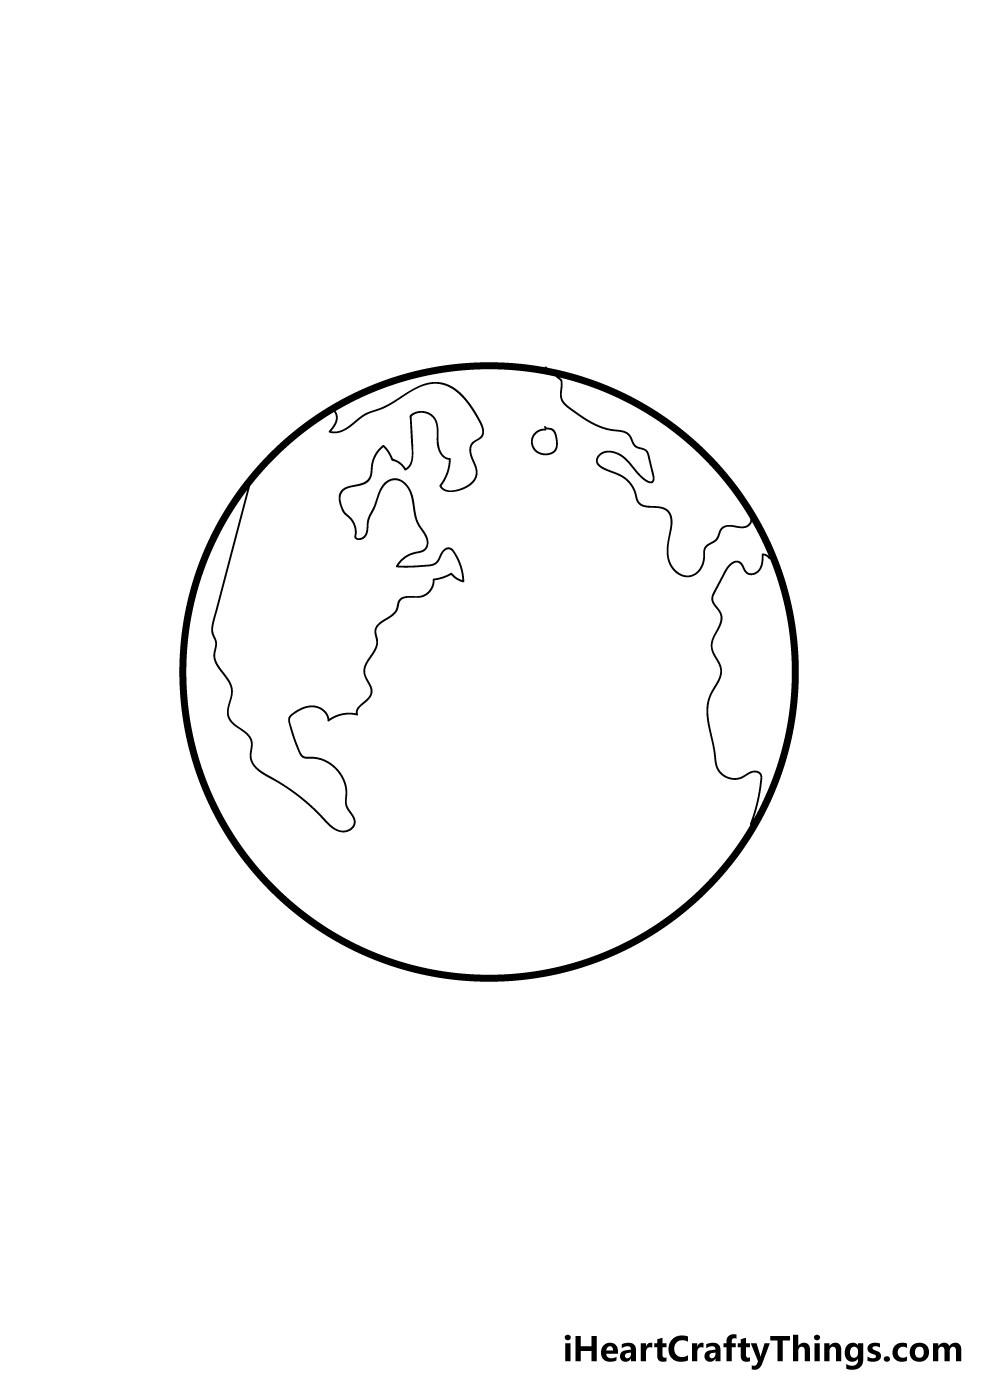 earth drawing step 4